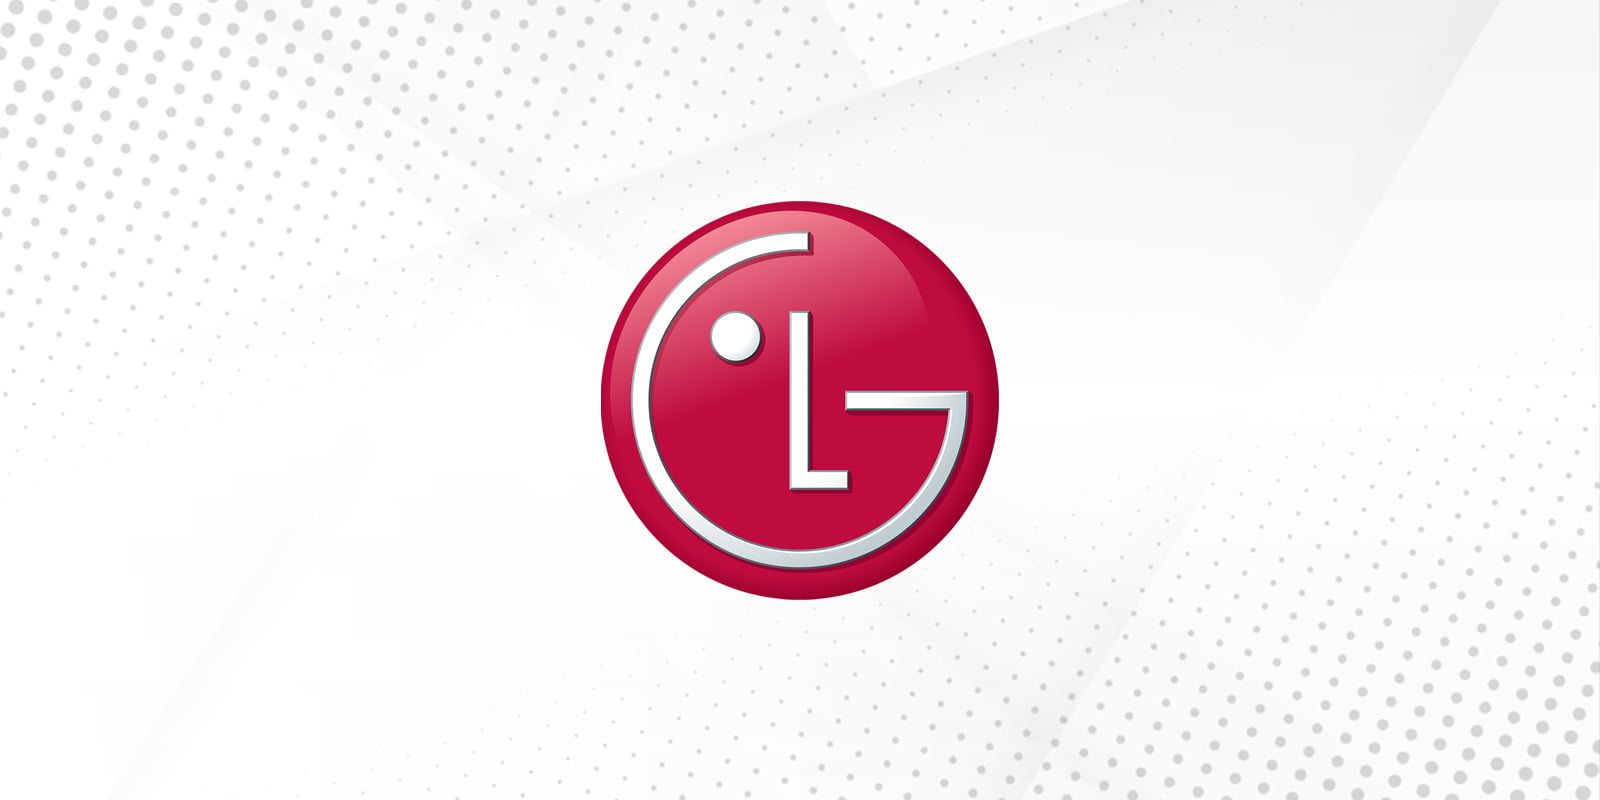 LG may be shutting down its smartphone business